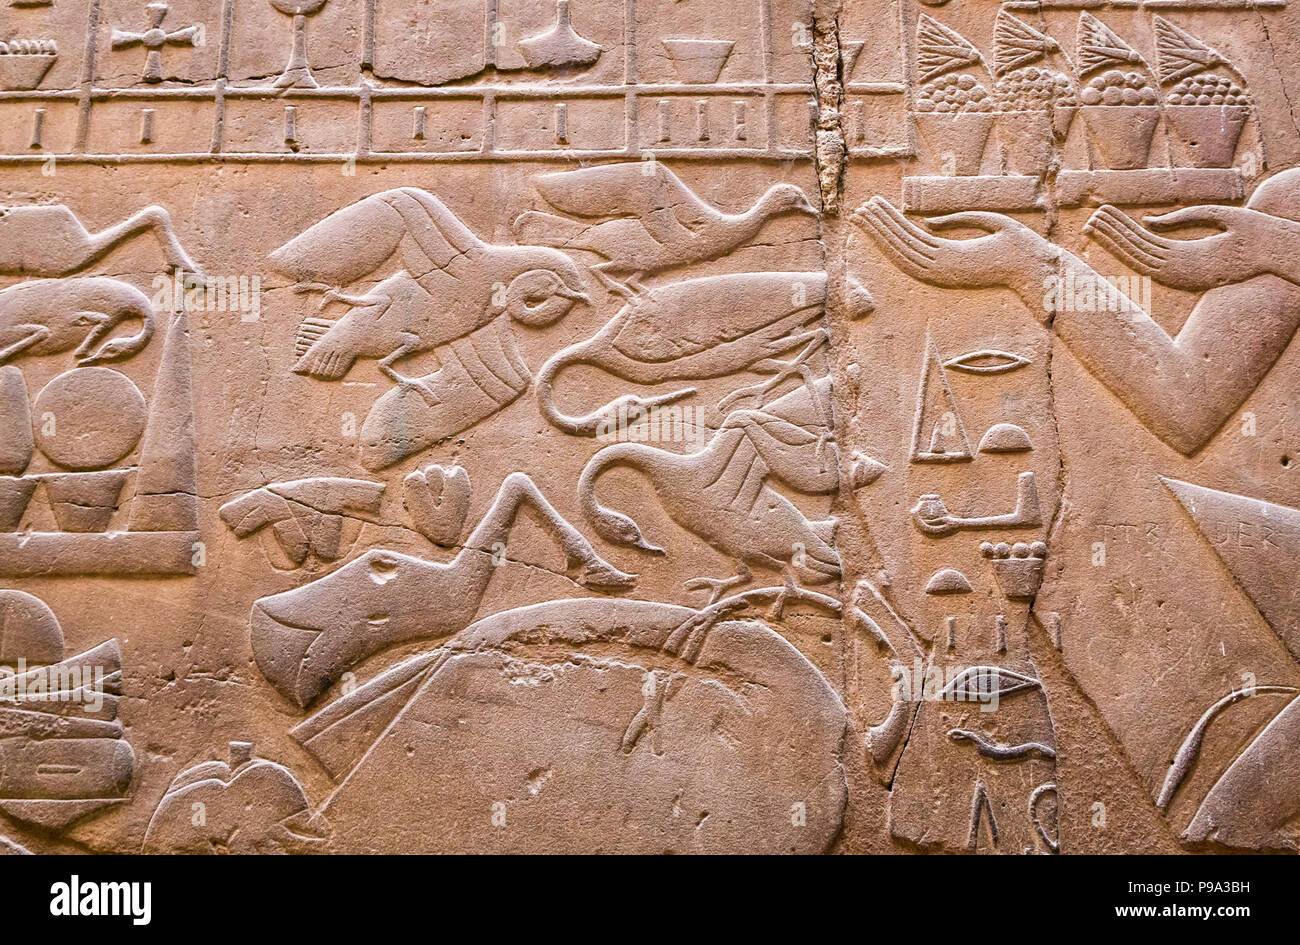 Close up detail of Ancient Egyptian hieroglyph, Luxor Temple, Luxor, Egypt, Africa featuring birds - Stock Image